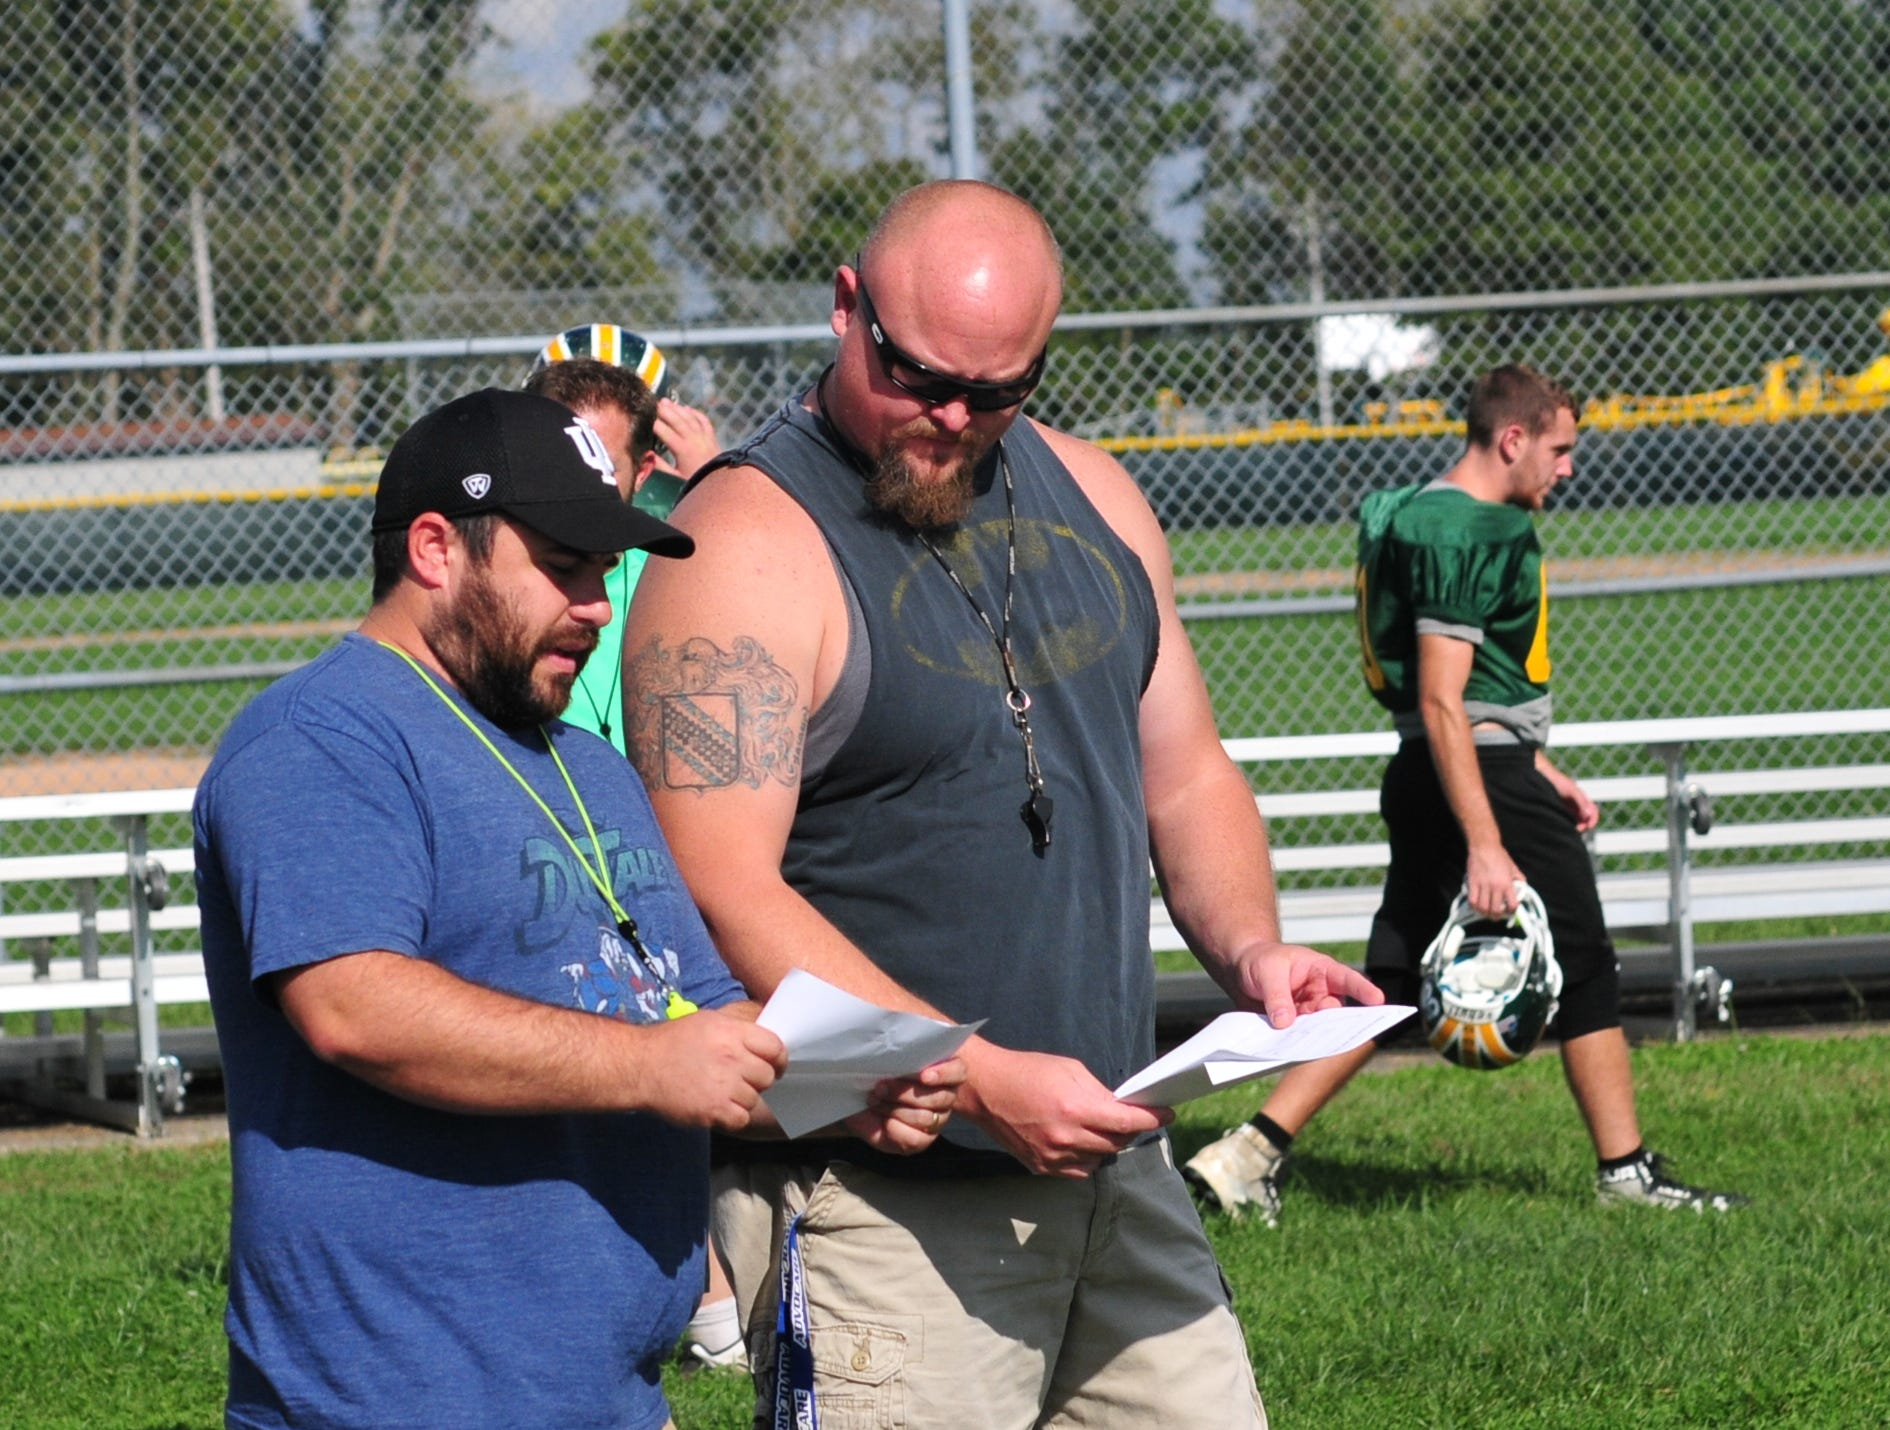 Wes Oler, left, talks with assistant coach Jamie Mastriano. Oler was named Northeastern High School's football co-coach after longtime head coach Mike Roeder resigned on Oct. 3, 2018.